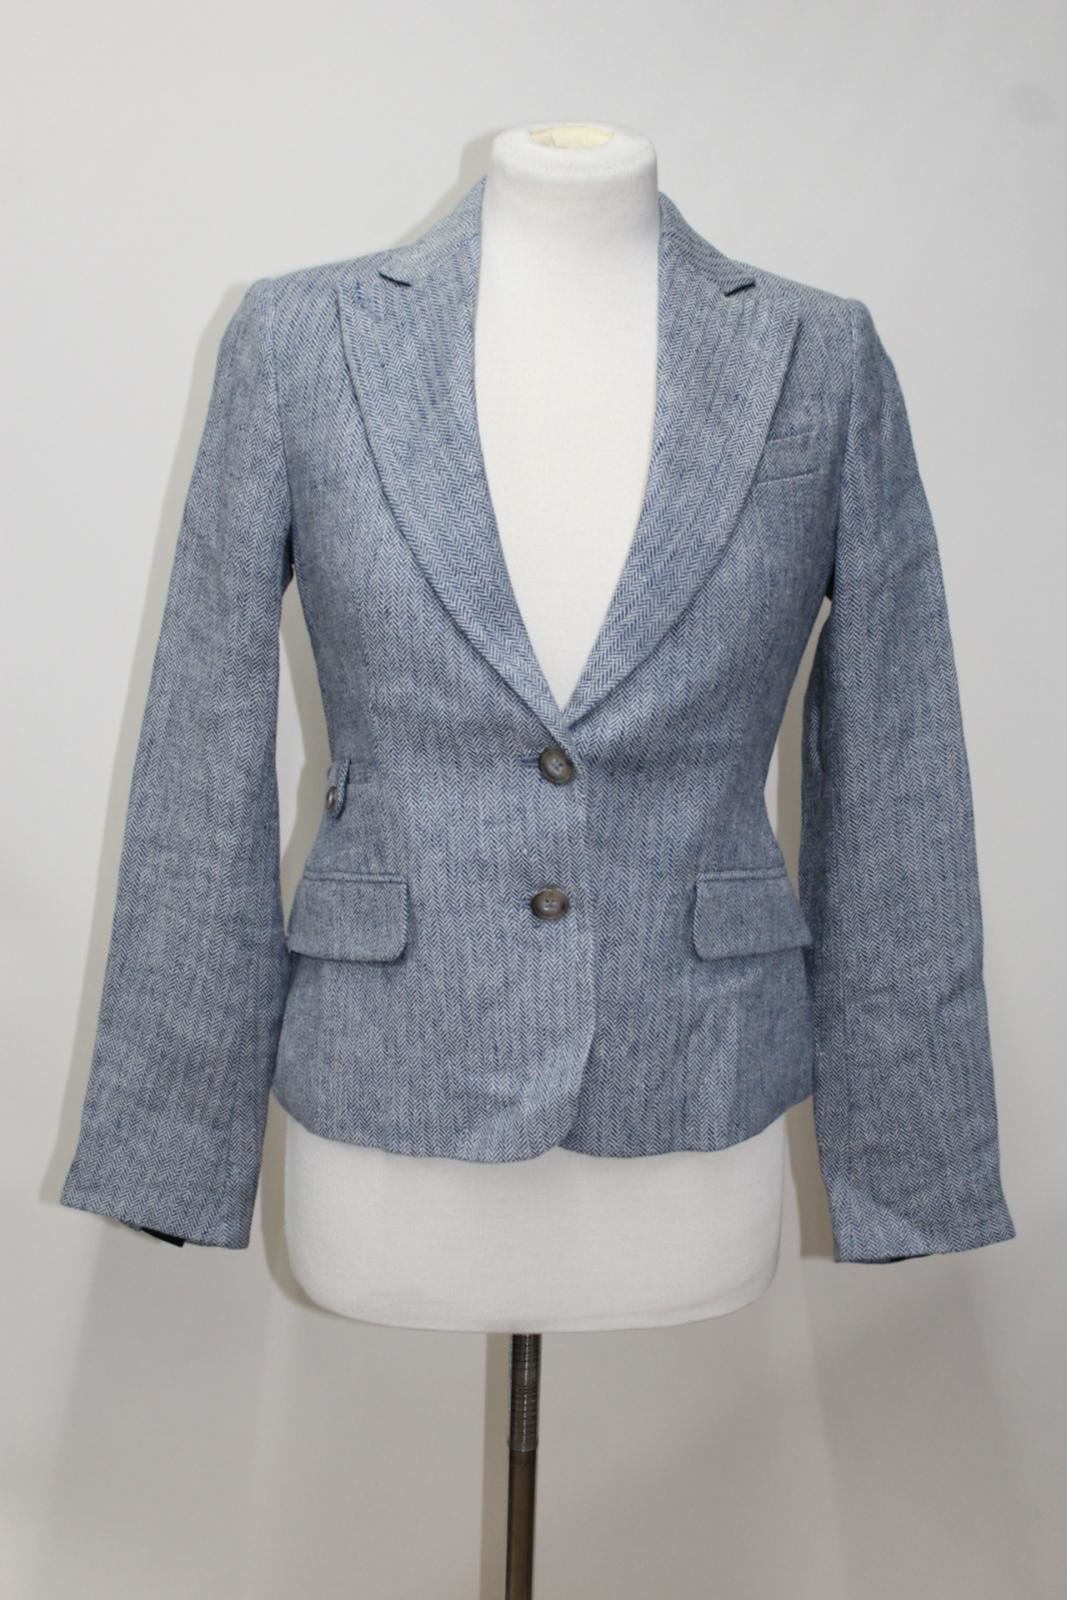 DUBARRY-Blairscove-Ladies-Blue-Linen-Single-Breasted-Jacket-Blazer-UK8-BNWT